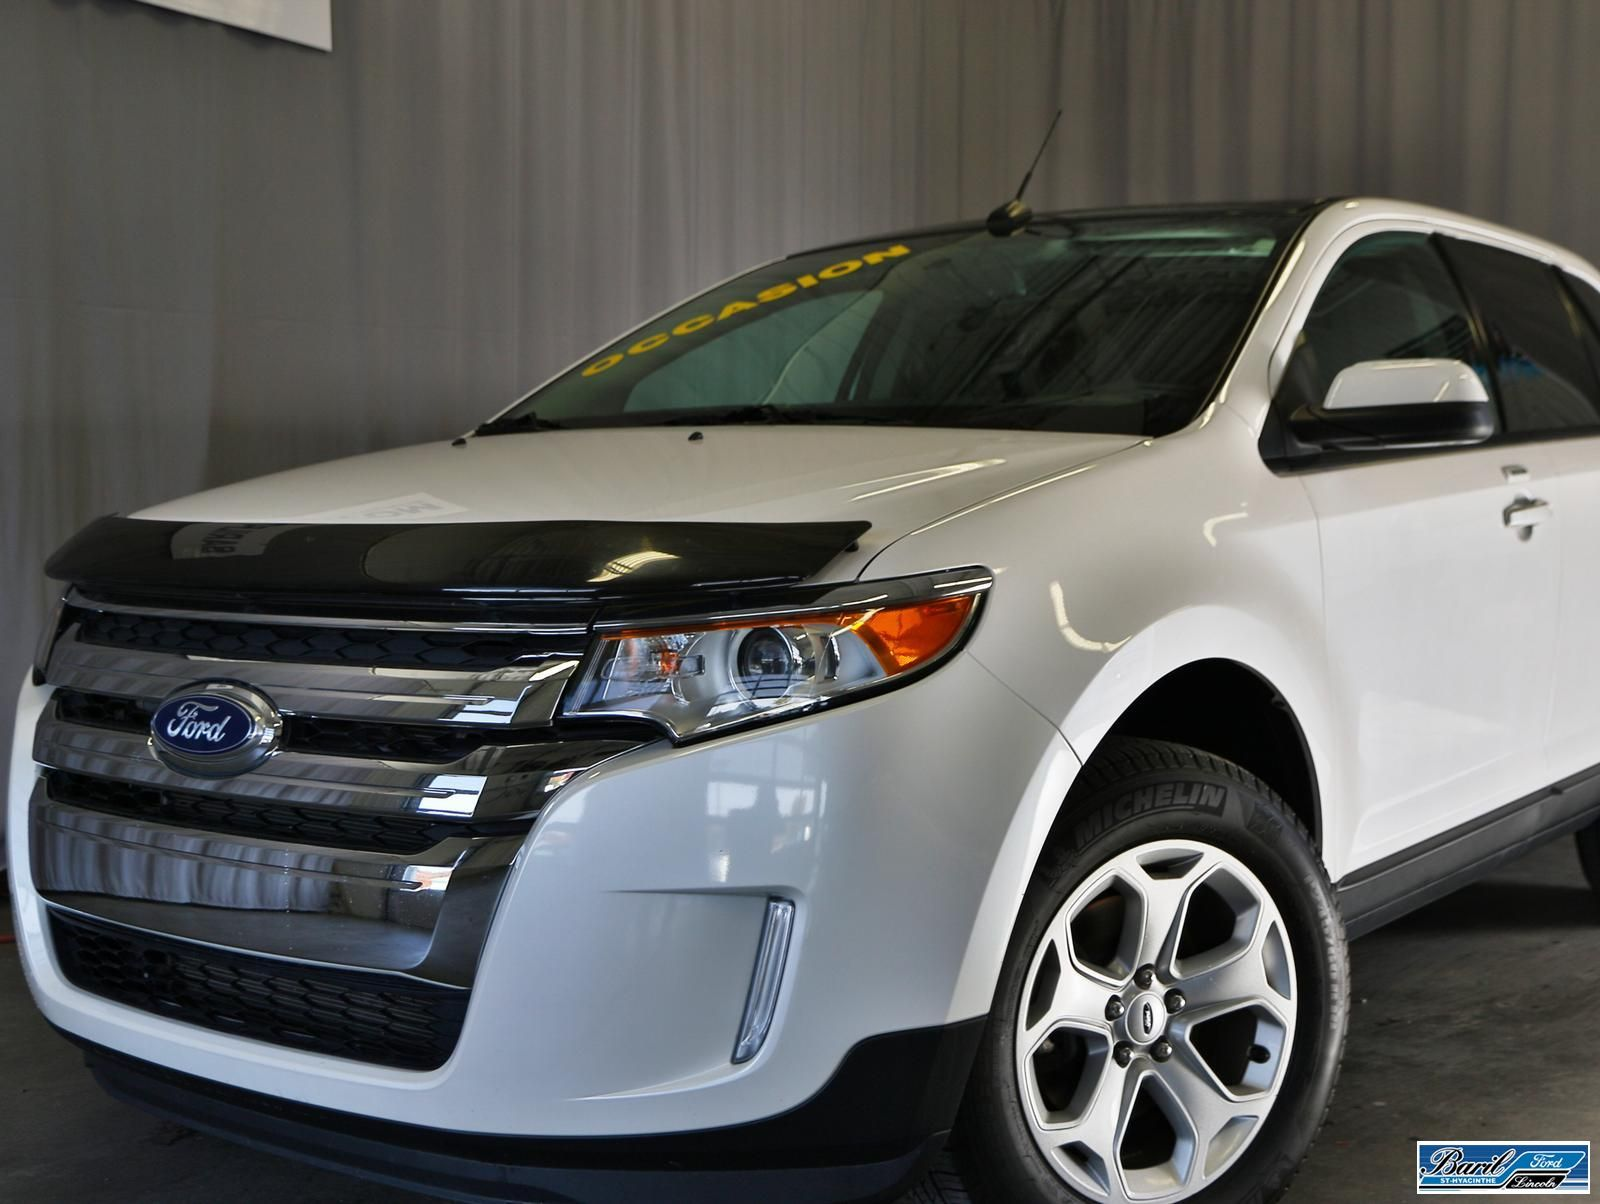 2013 Ford Edge SEL AWD Vehicule, Ford, Occasion